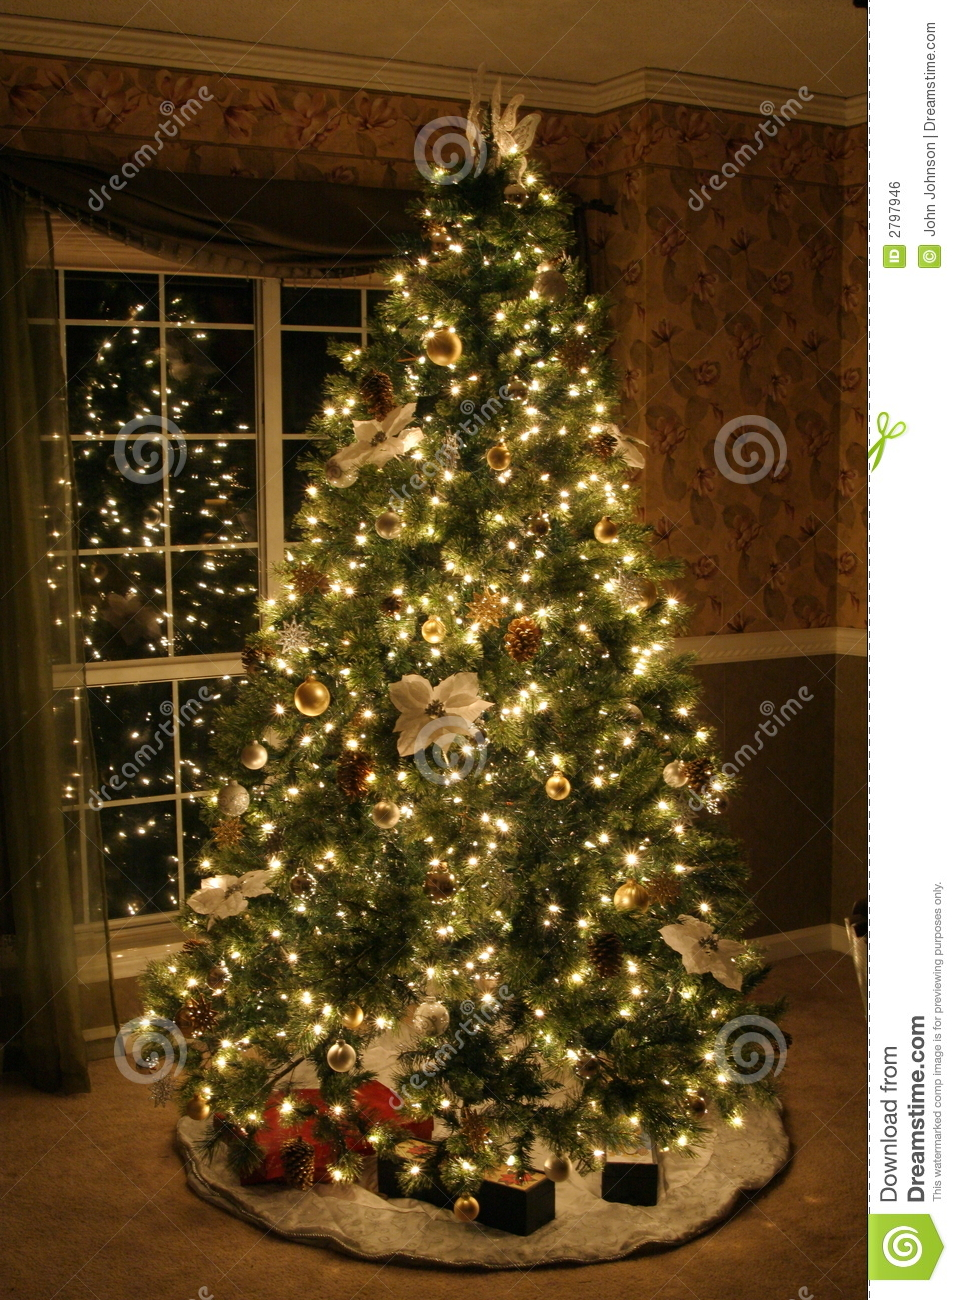 royalty free stock photo download christmas tree - Free Christmas Trees